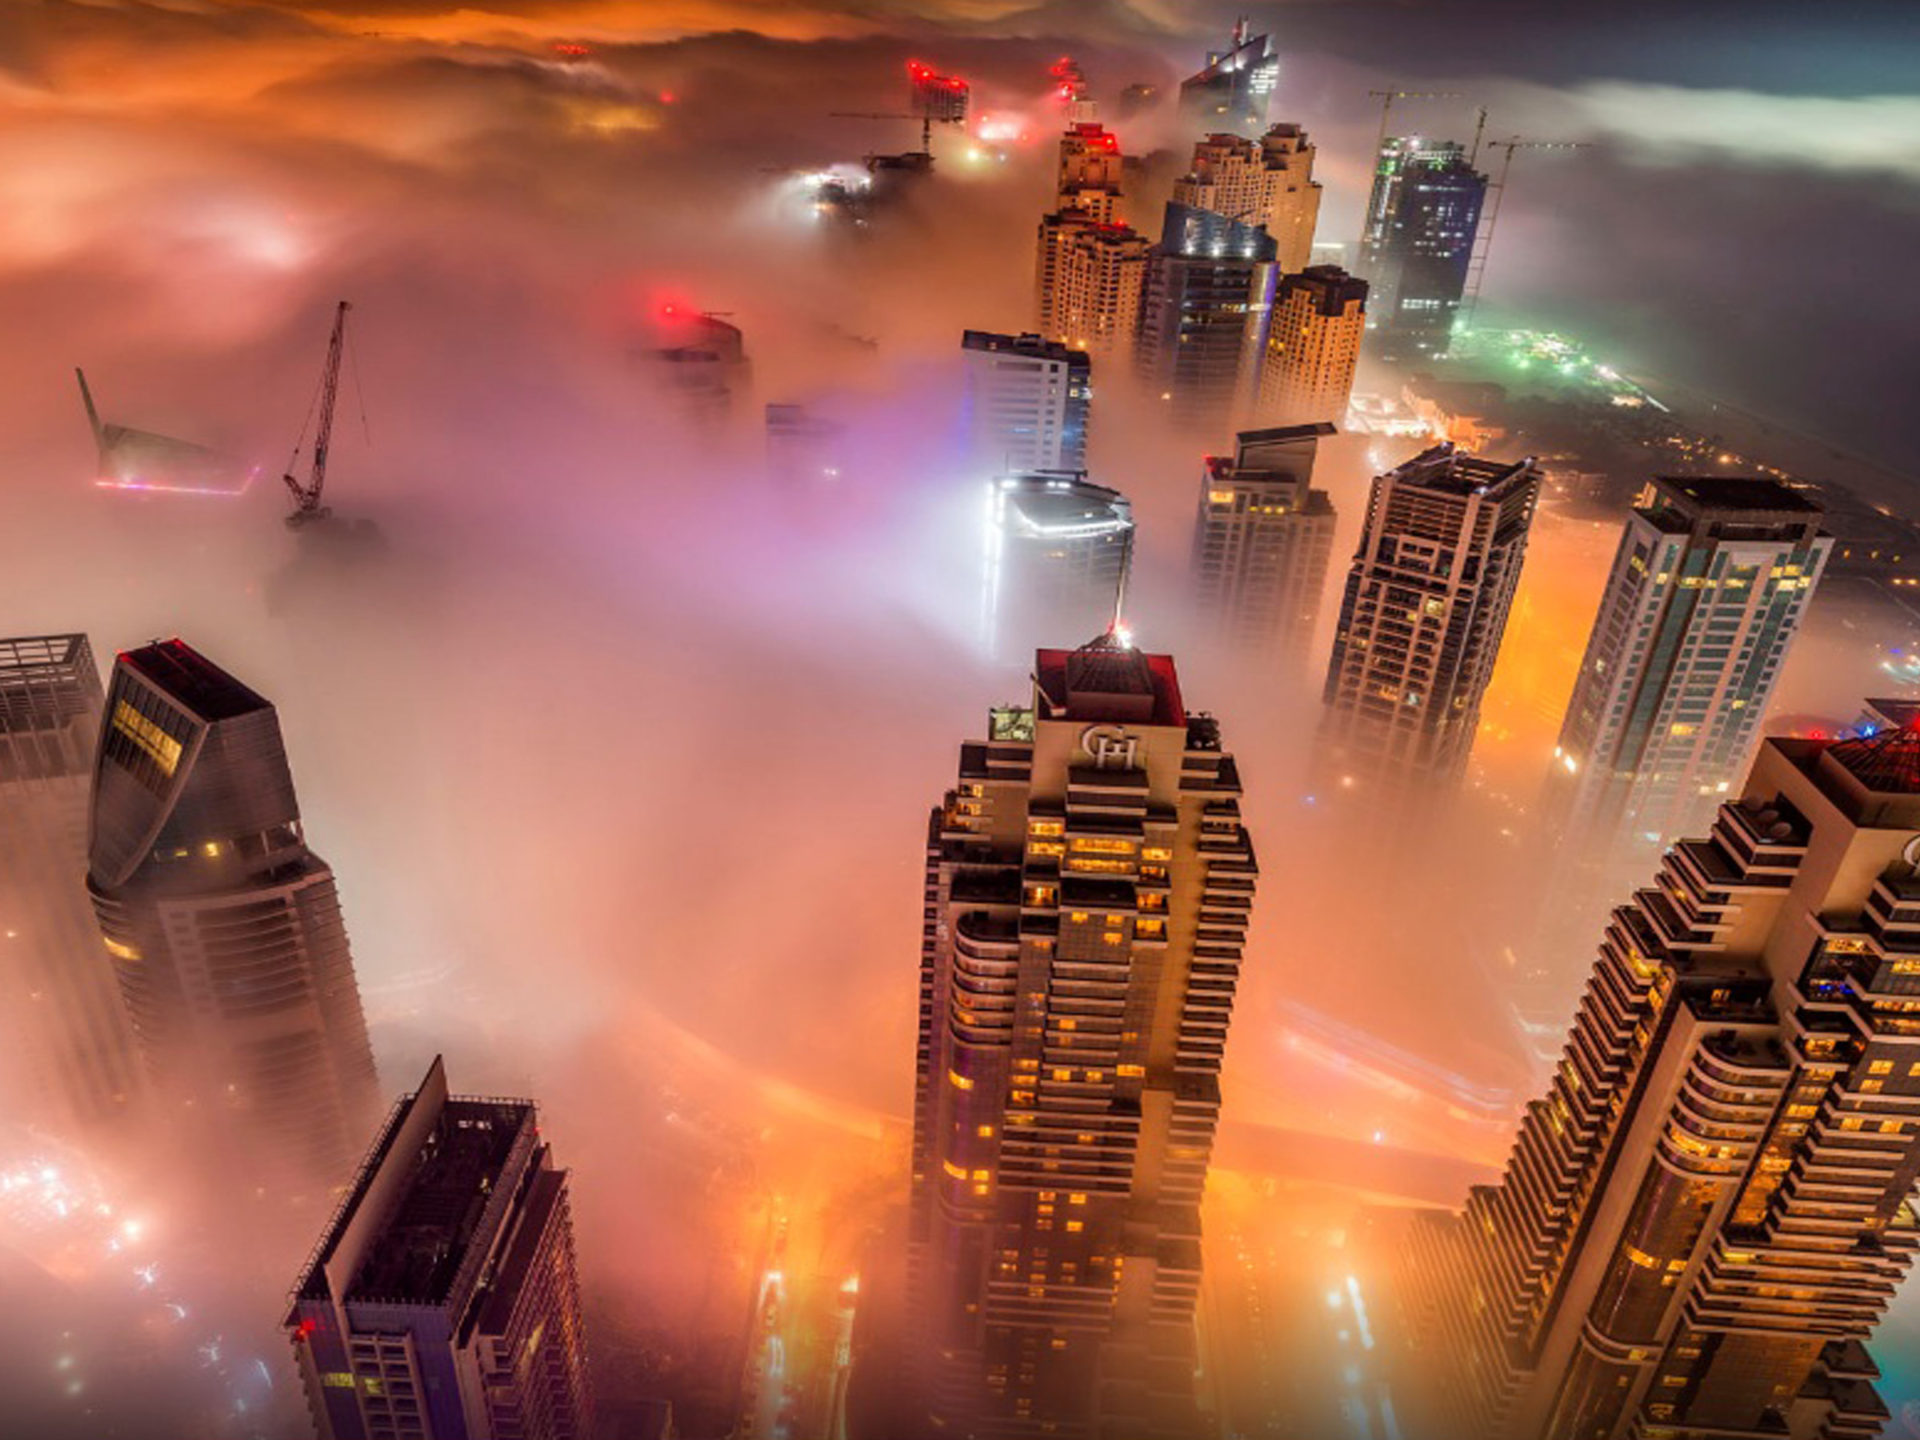 Iphone Wallpapers Hd Free Download Dubai Fog City At Night Hd Wallpapers For Desktop